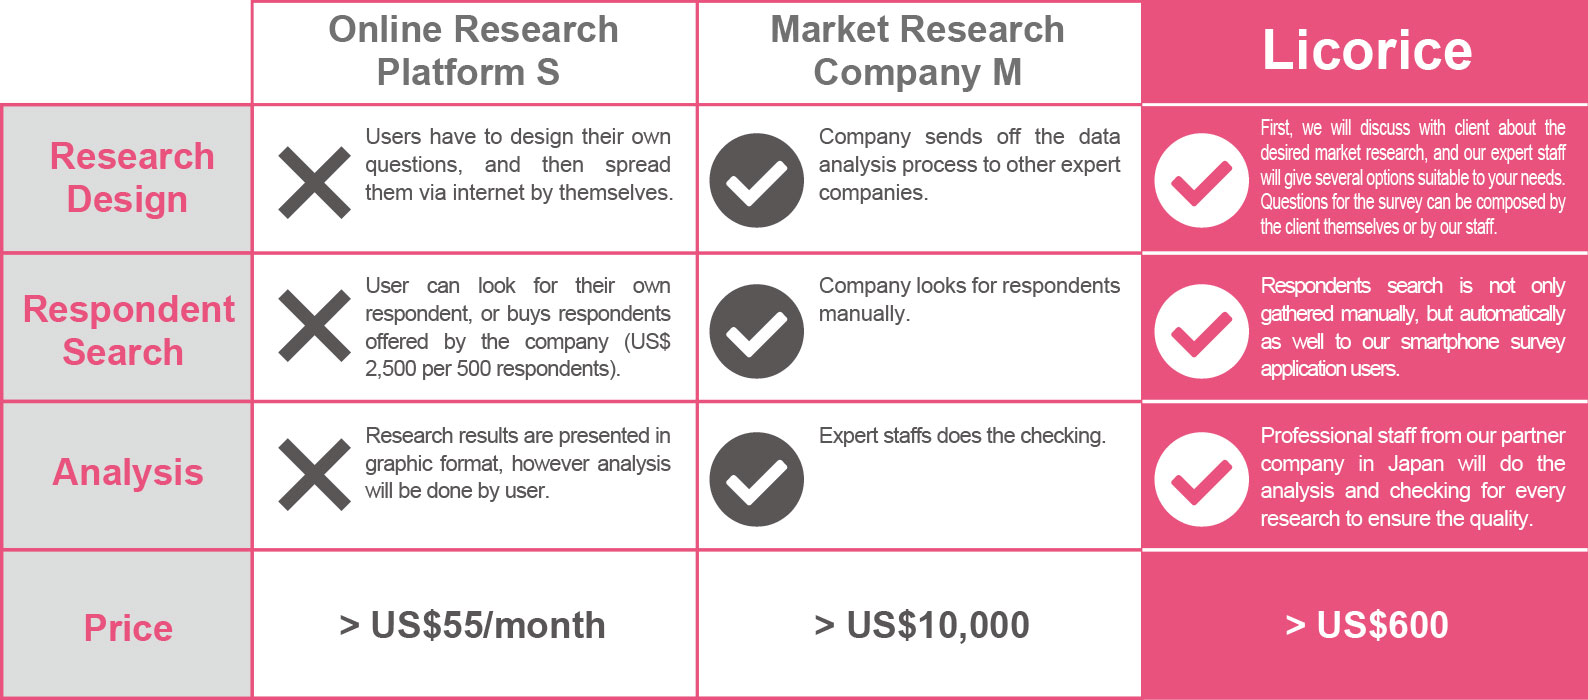 Online Research Platform S Market Research Company M LICORICE Research Flow User decides their own questions, and then spready it via internet (WEB). Company sends off the data analysis process to other expert companies. First, we will discuss with client about the desired market research, and our expert staff will give several options suitable to your needs. Questions for the survey can be composed by the client themselves or by our staff.Respondent SearchUser can look for their own respondent, or buys respondents offered by the company (Rp 25.000.000 per 500 respondents).Company looks for respondents manually.Respondents search is not only gathered manually, but automatically as well to our smartphone survey application users.AnalysisResearch results are presented in graphic format, however analysis will be done by user.Expert staffs does the checking.Professional staff from our partner company in Japan will do the analysis and checking for every research to ensure the quality.PriceRp550.000/monthRp100.000.000~Rp6.000.000~